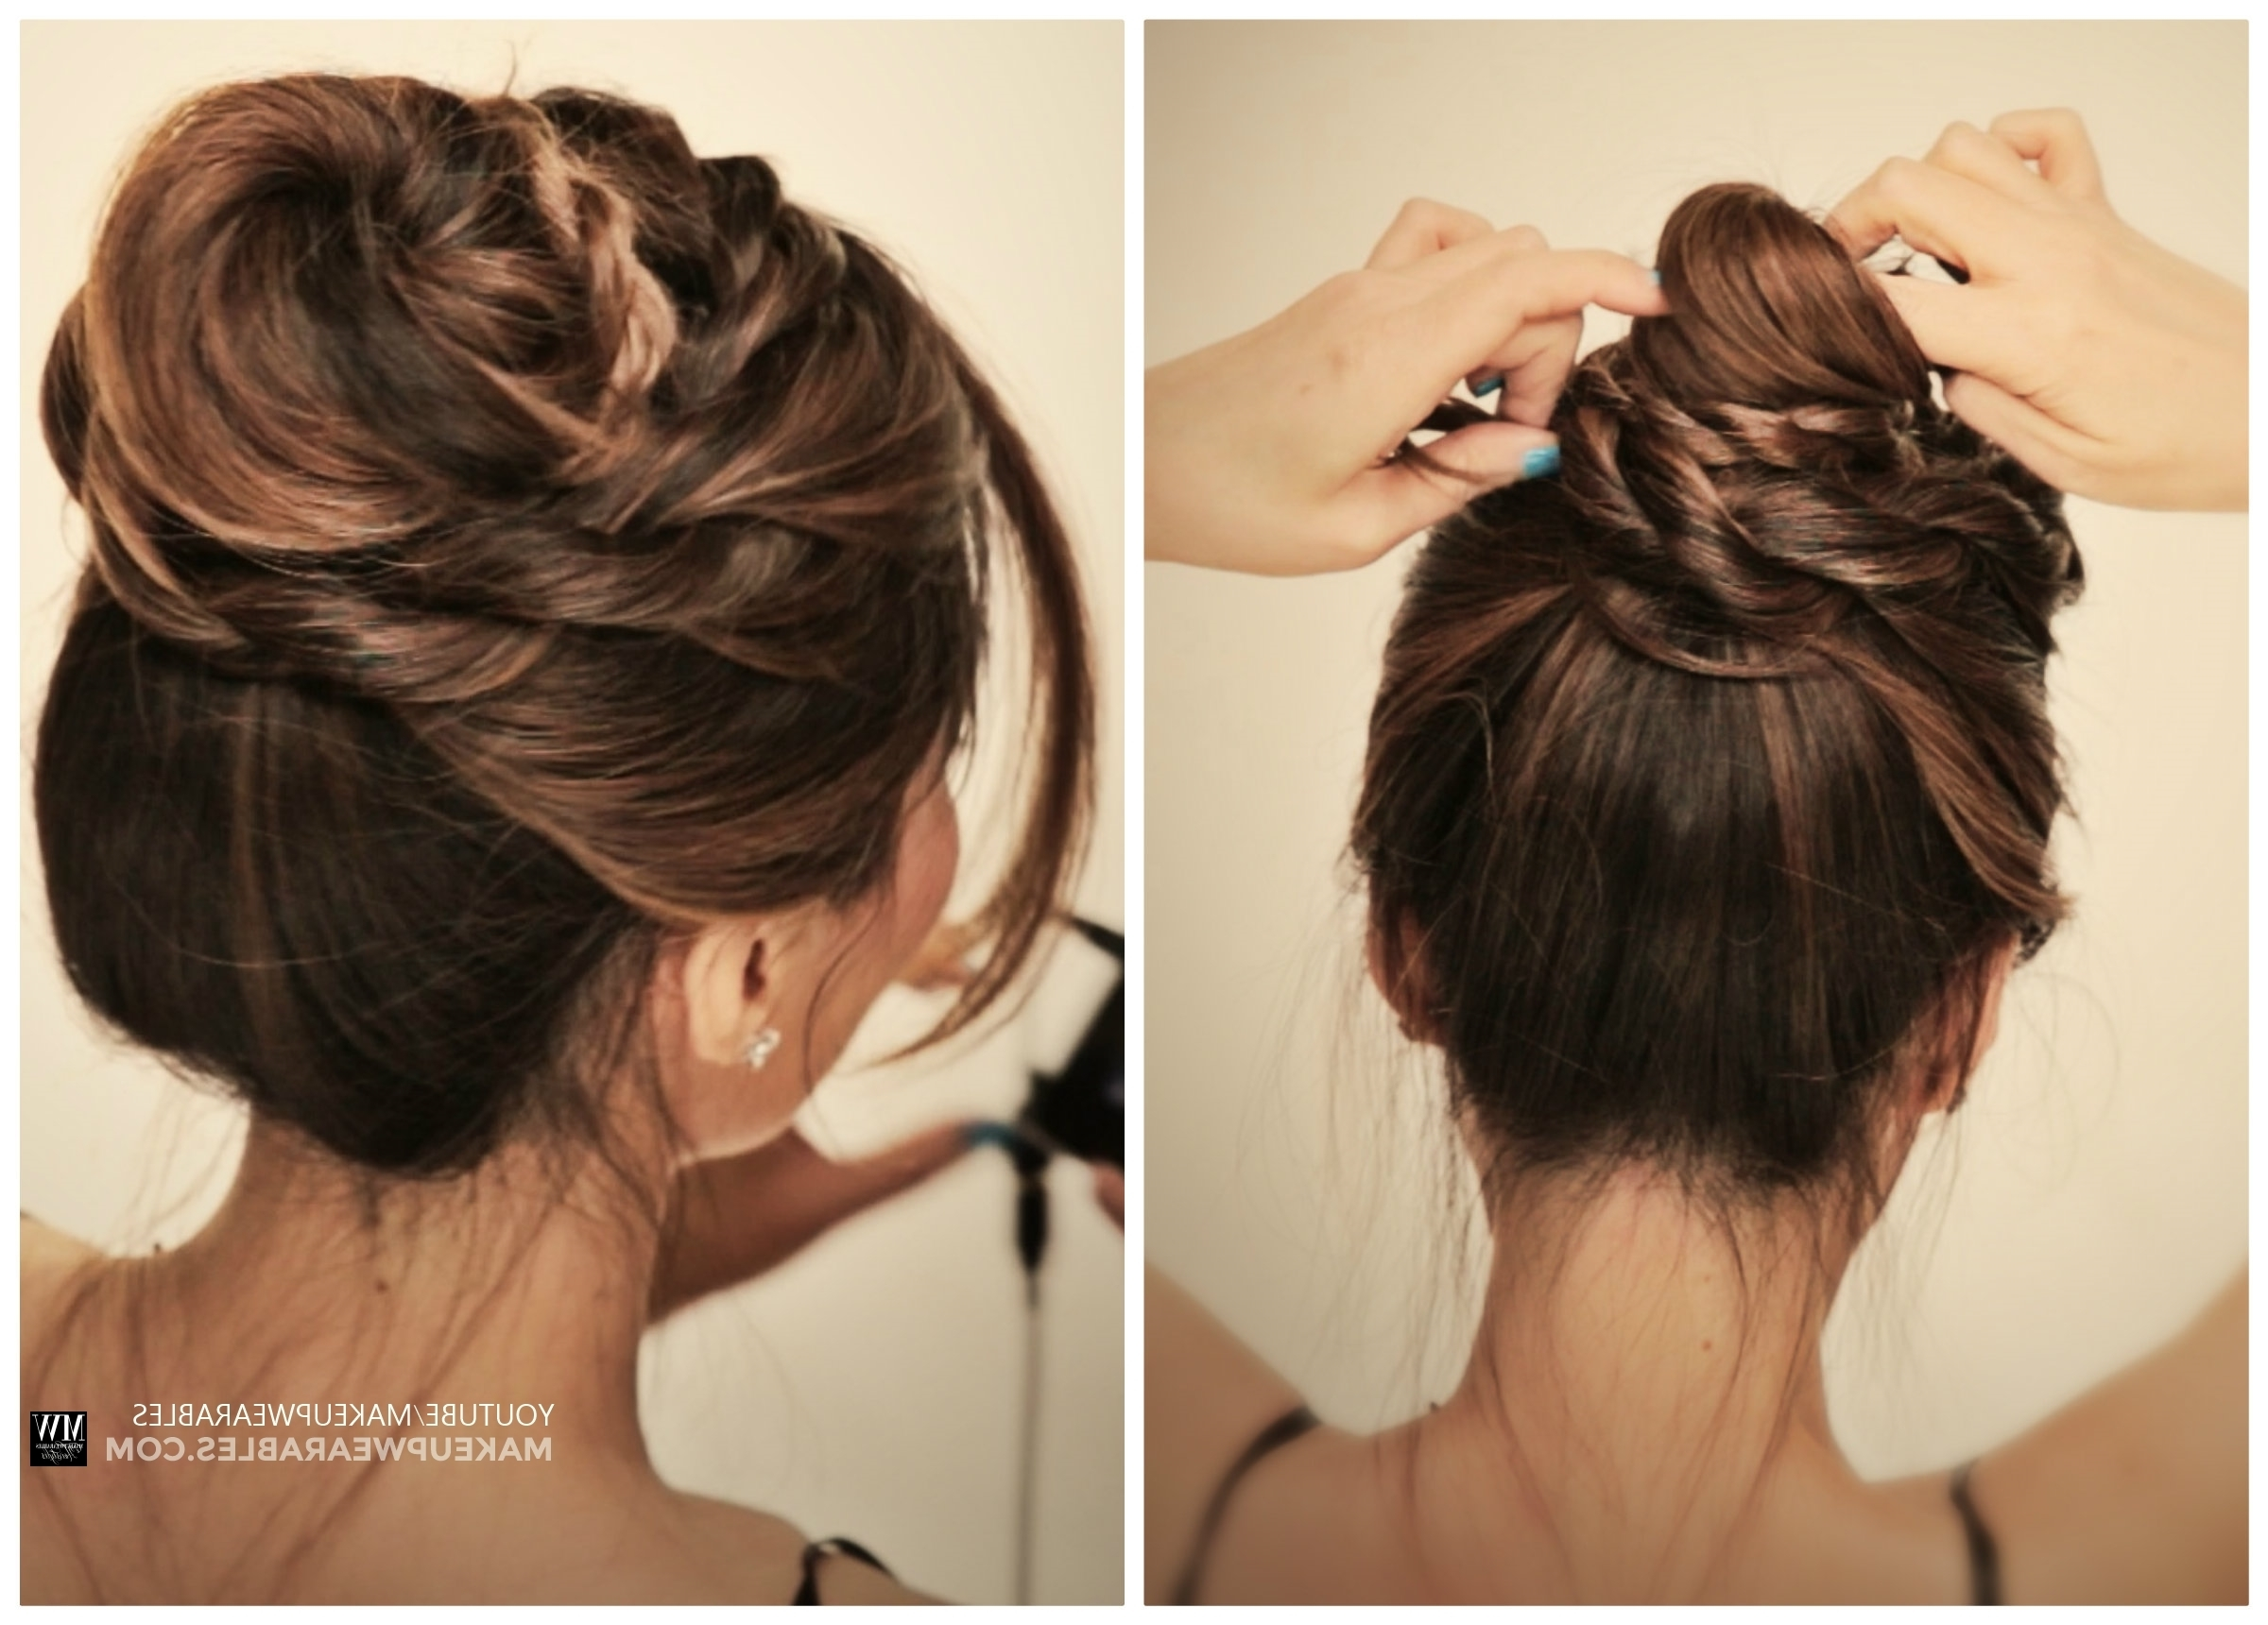 Cute Messy Bun Braids Ballerina Twisted Updo Hairstyle | Medium Hair With Regard To Easy Updo Hairstyles (View 7 of 15)